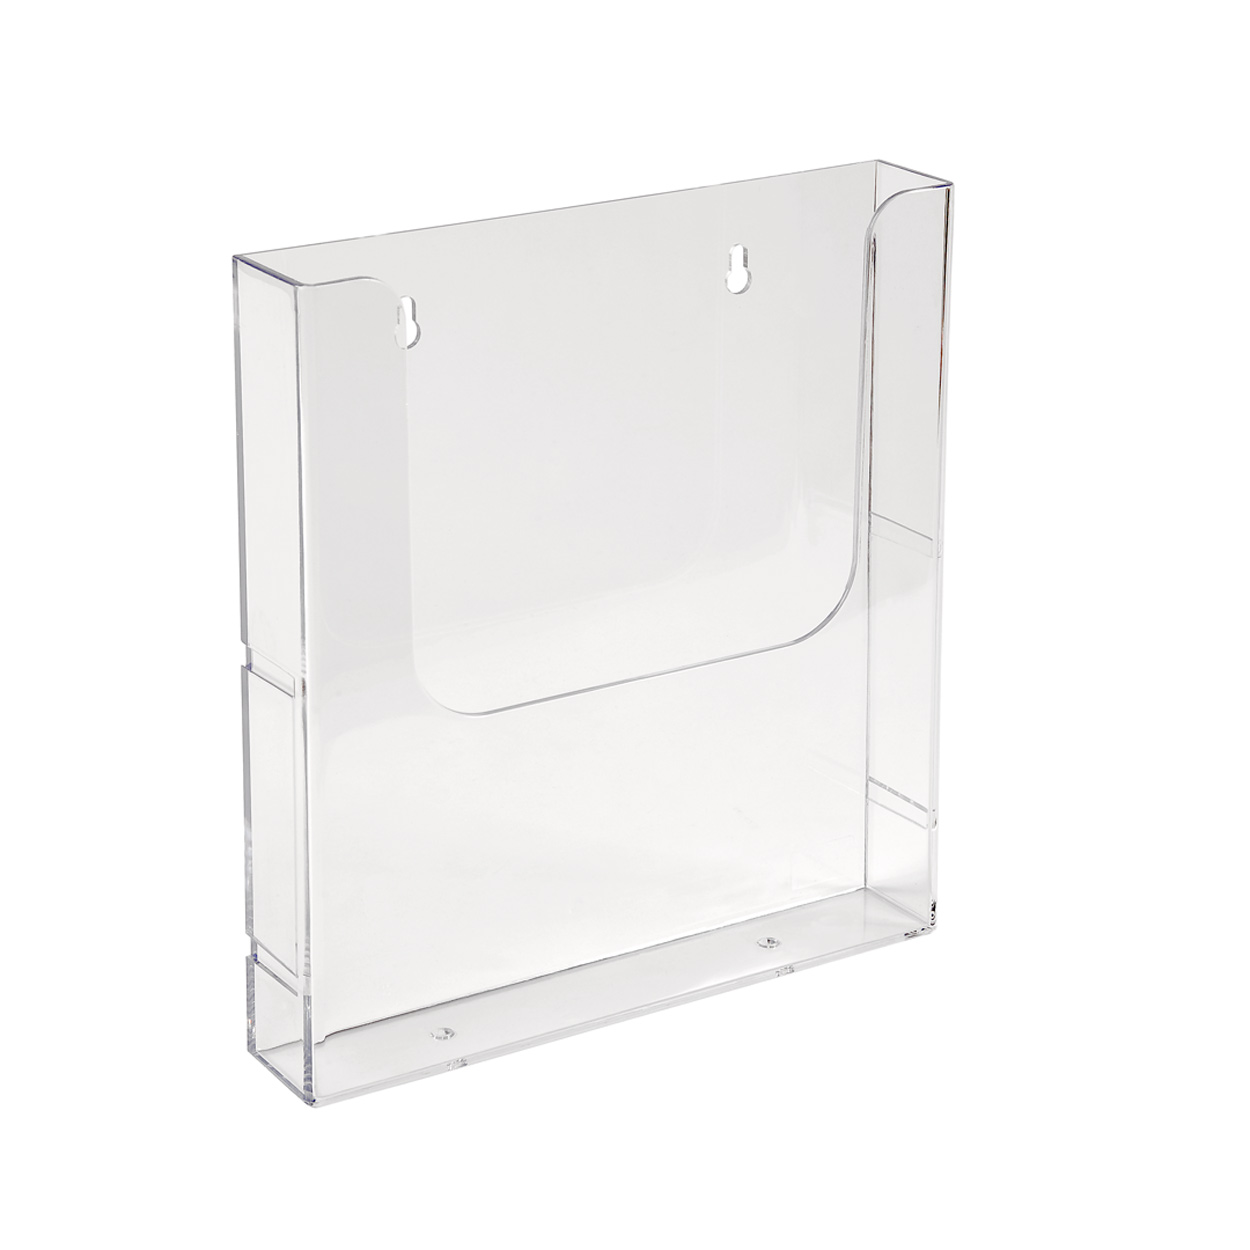 Brochure Holder A5 Wall Mount x 1 Compartment